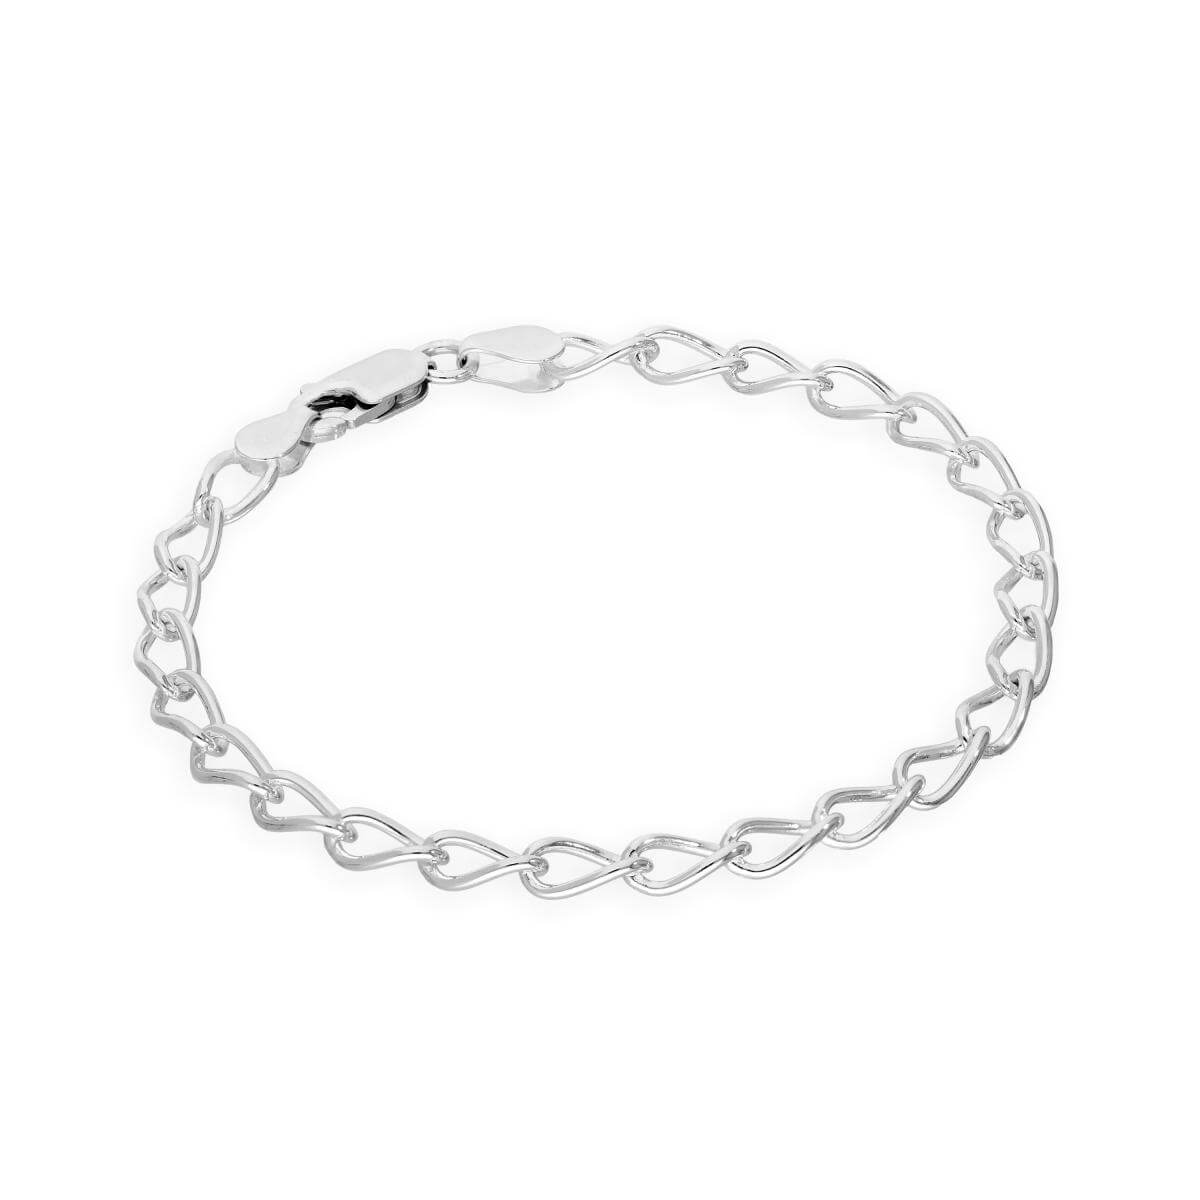 Sterling Silver Open 4mm Curb Charm Bracelet 6 - 8 Inches